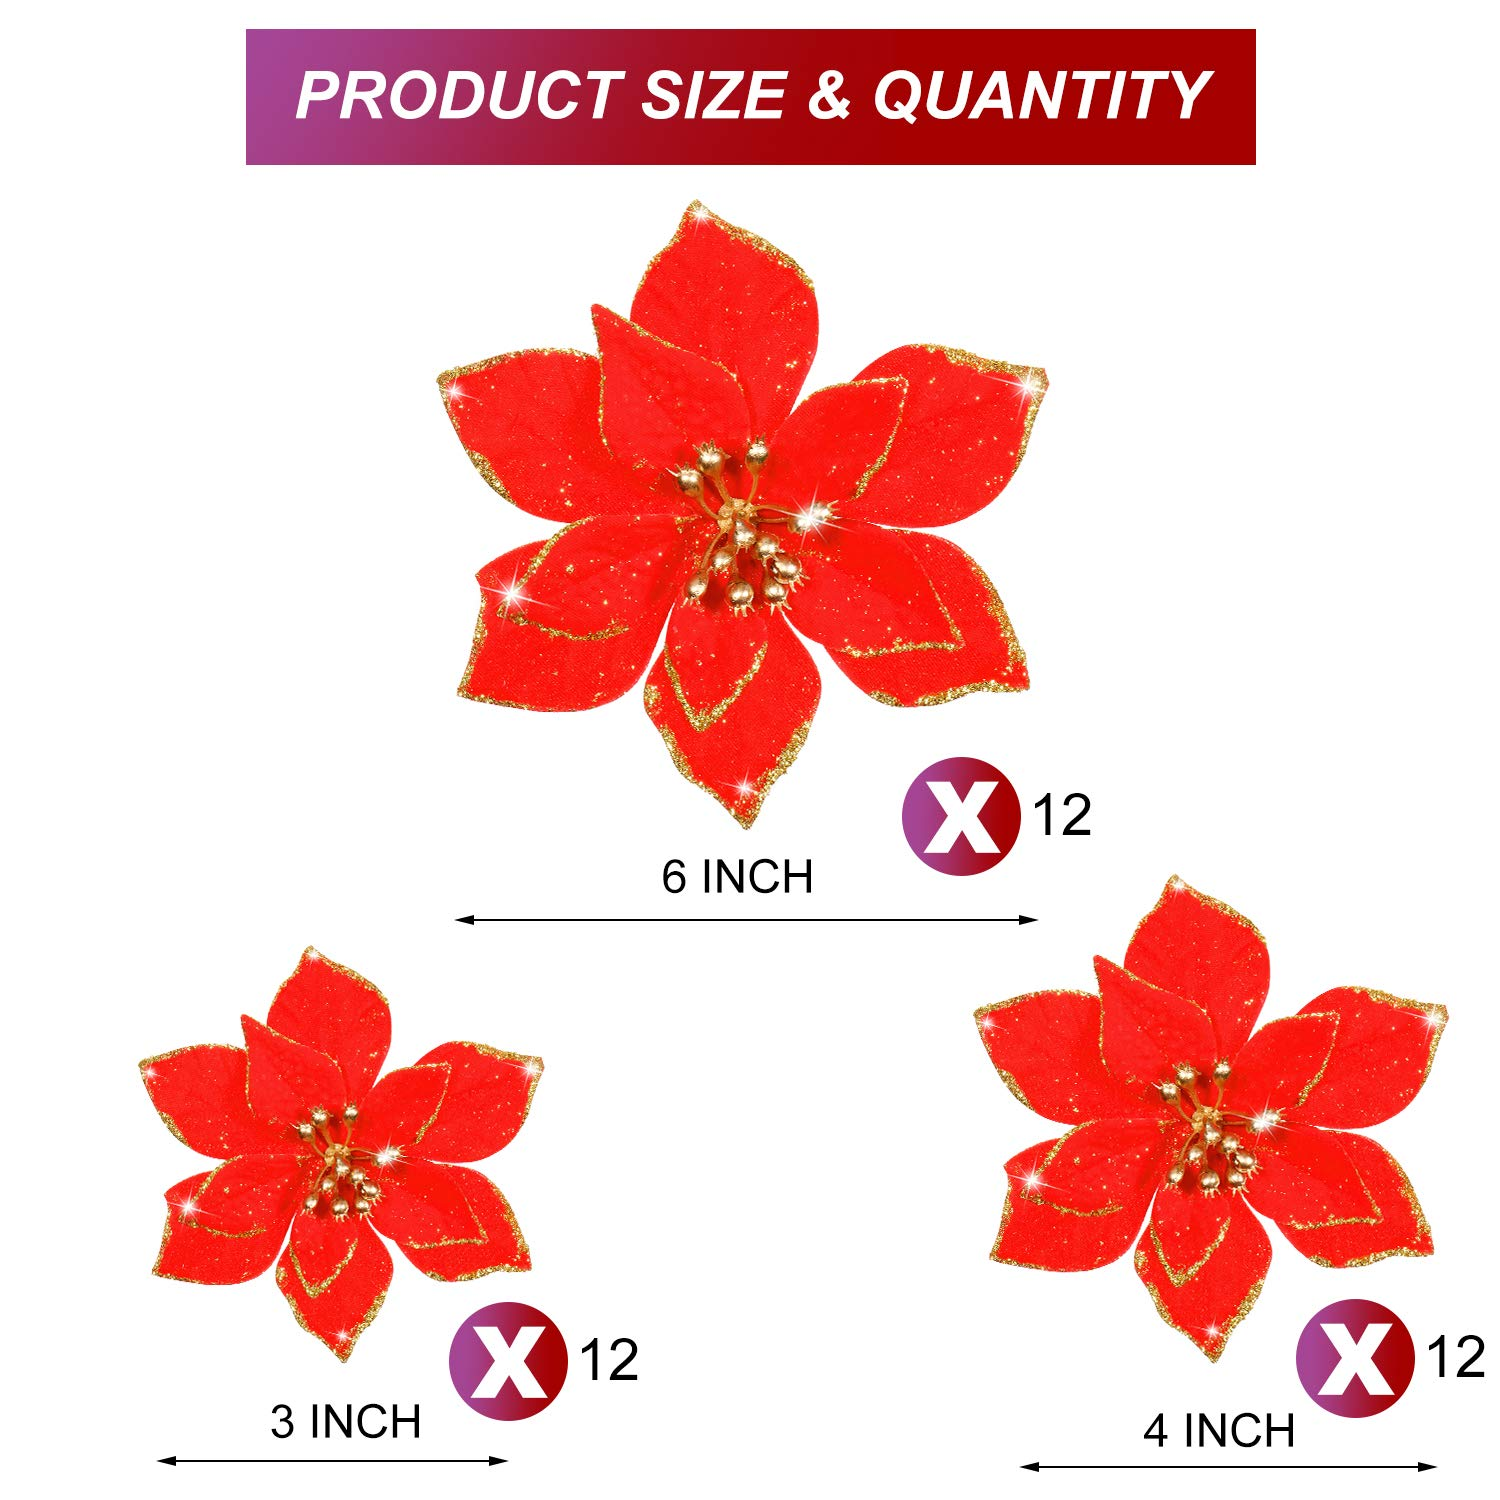 Blue, Hollow Style WILLBOND 36 pieces Festivous Wishel New Glitter Artificial Wedding Christmas Flowers Glitter Poinsettia Christmas Tree Ornaments,3//4//6 Inches